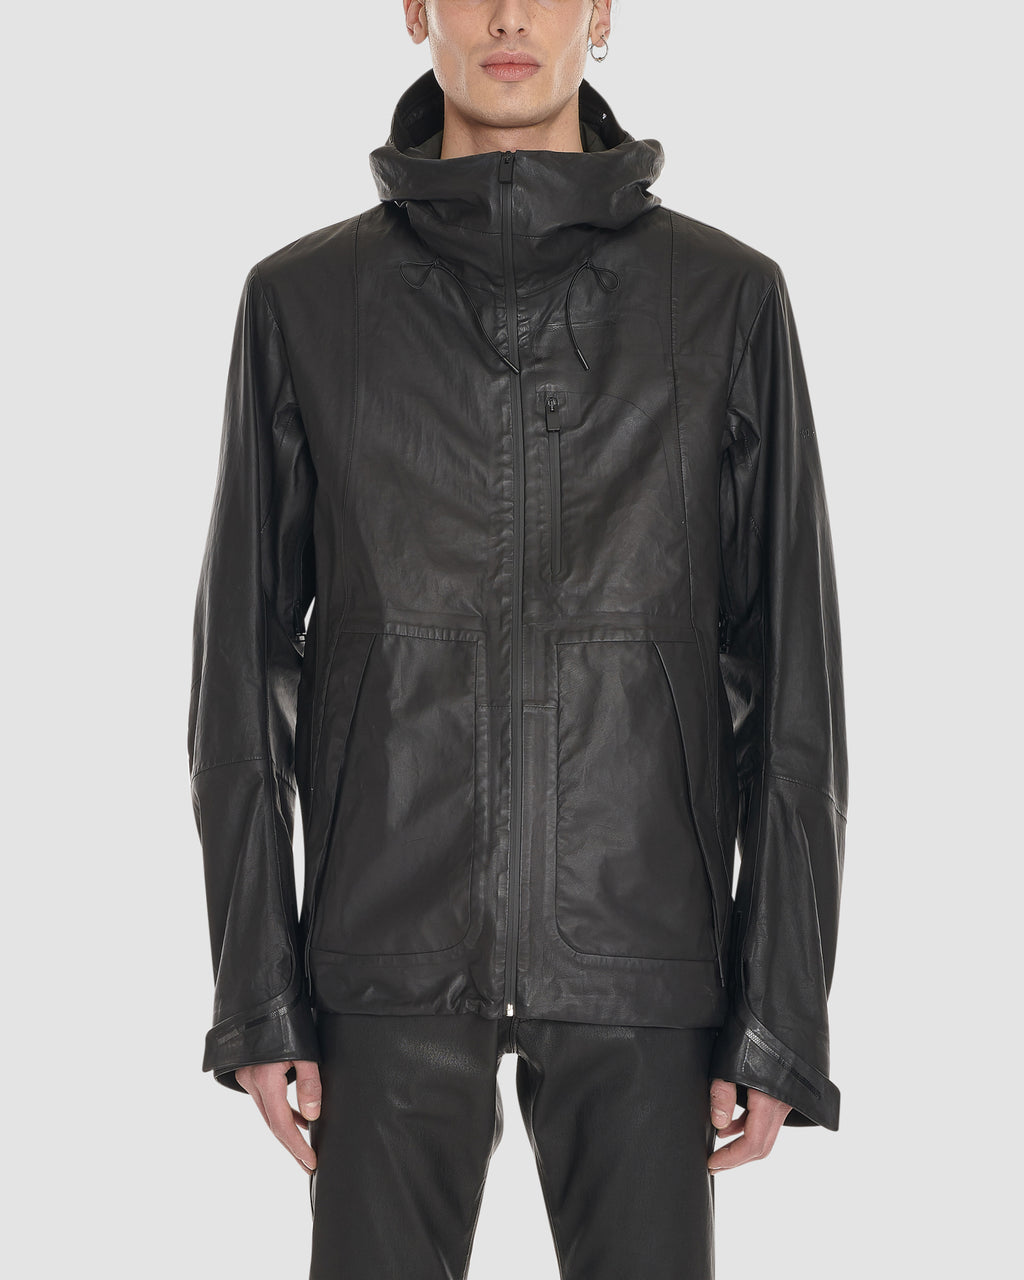 LIGHTTECH LEATHER WINDBREAKER PRE-ORDER